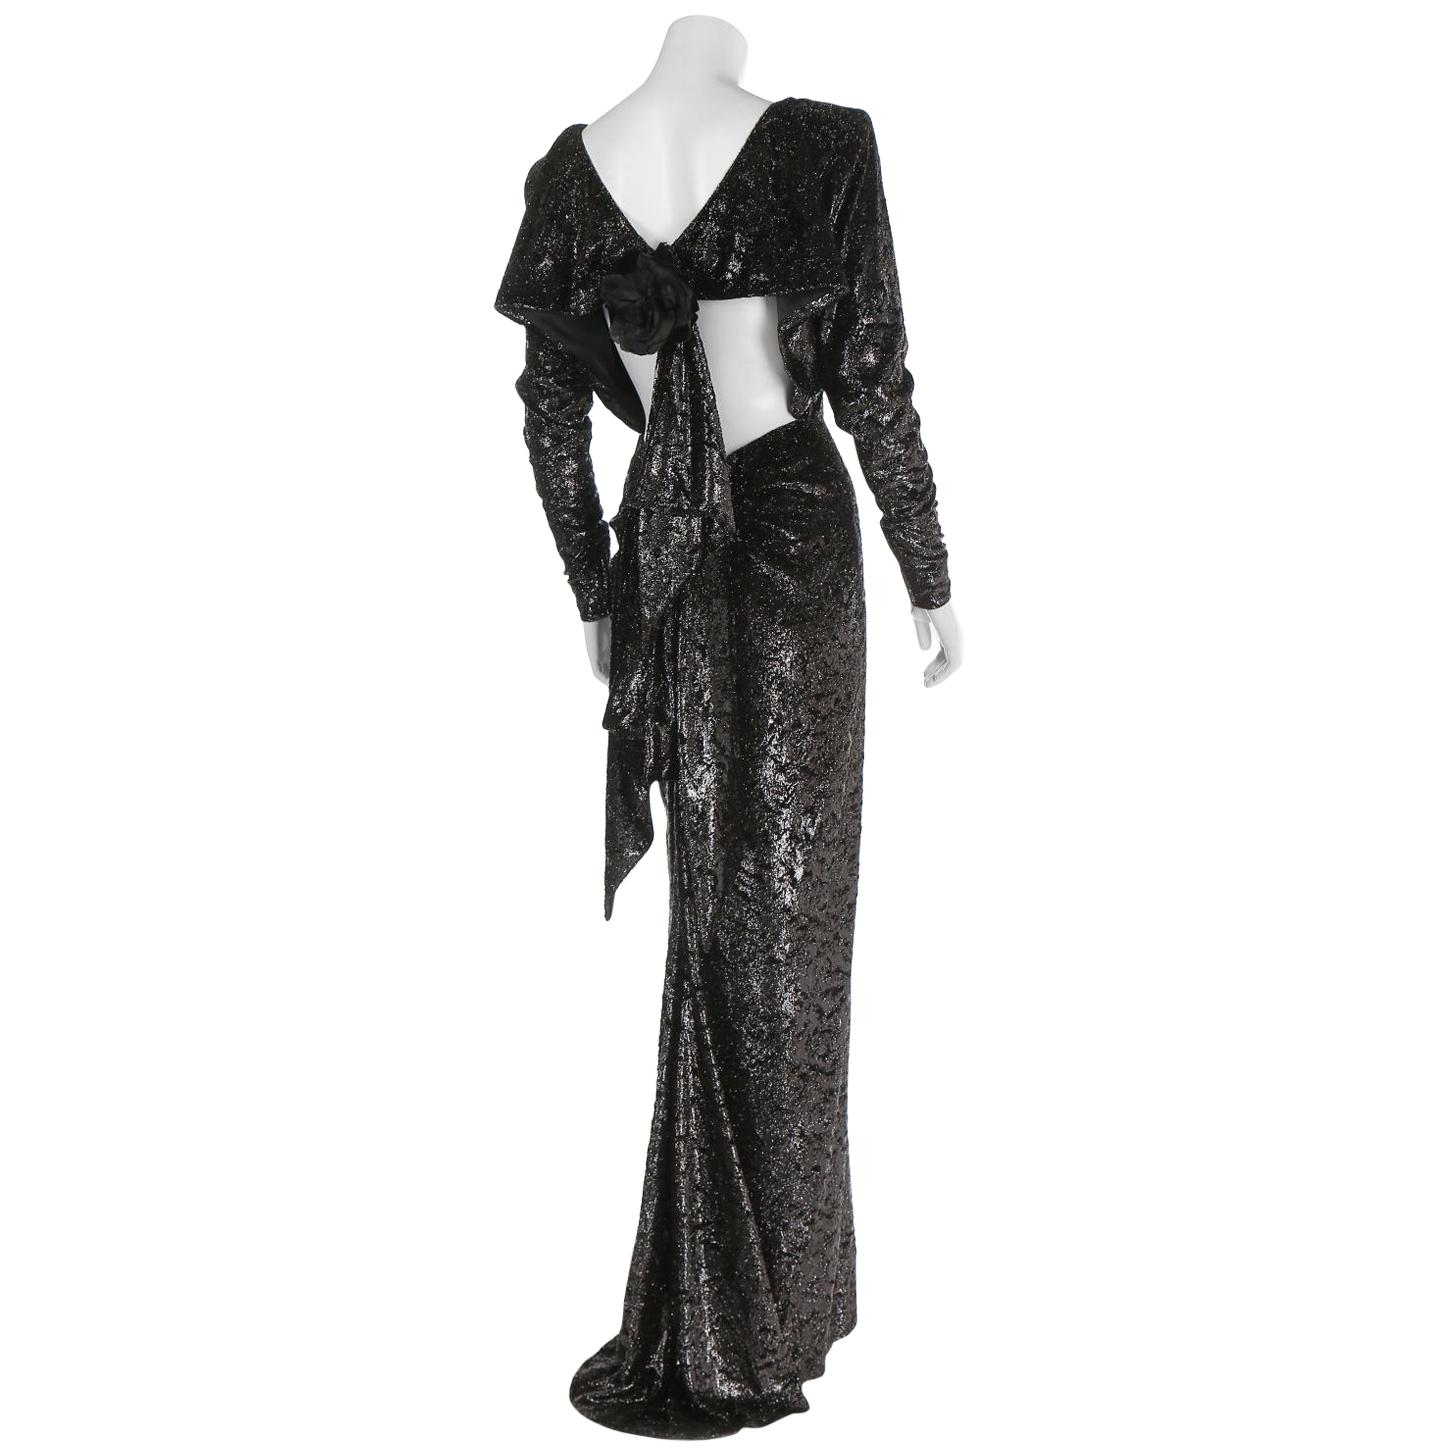 Rare 2 in 1 Yves Saint Laurent Couture Crushed Velvet Numbered Dress c. 1986